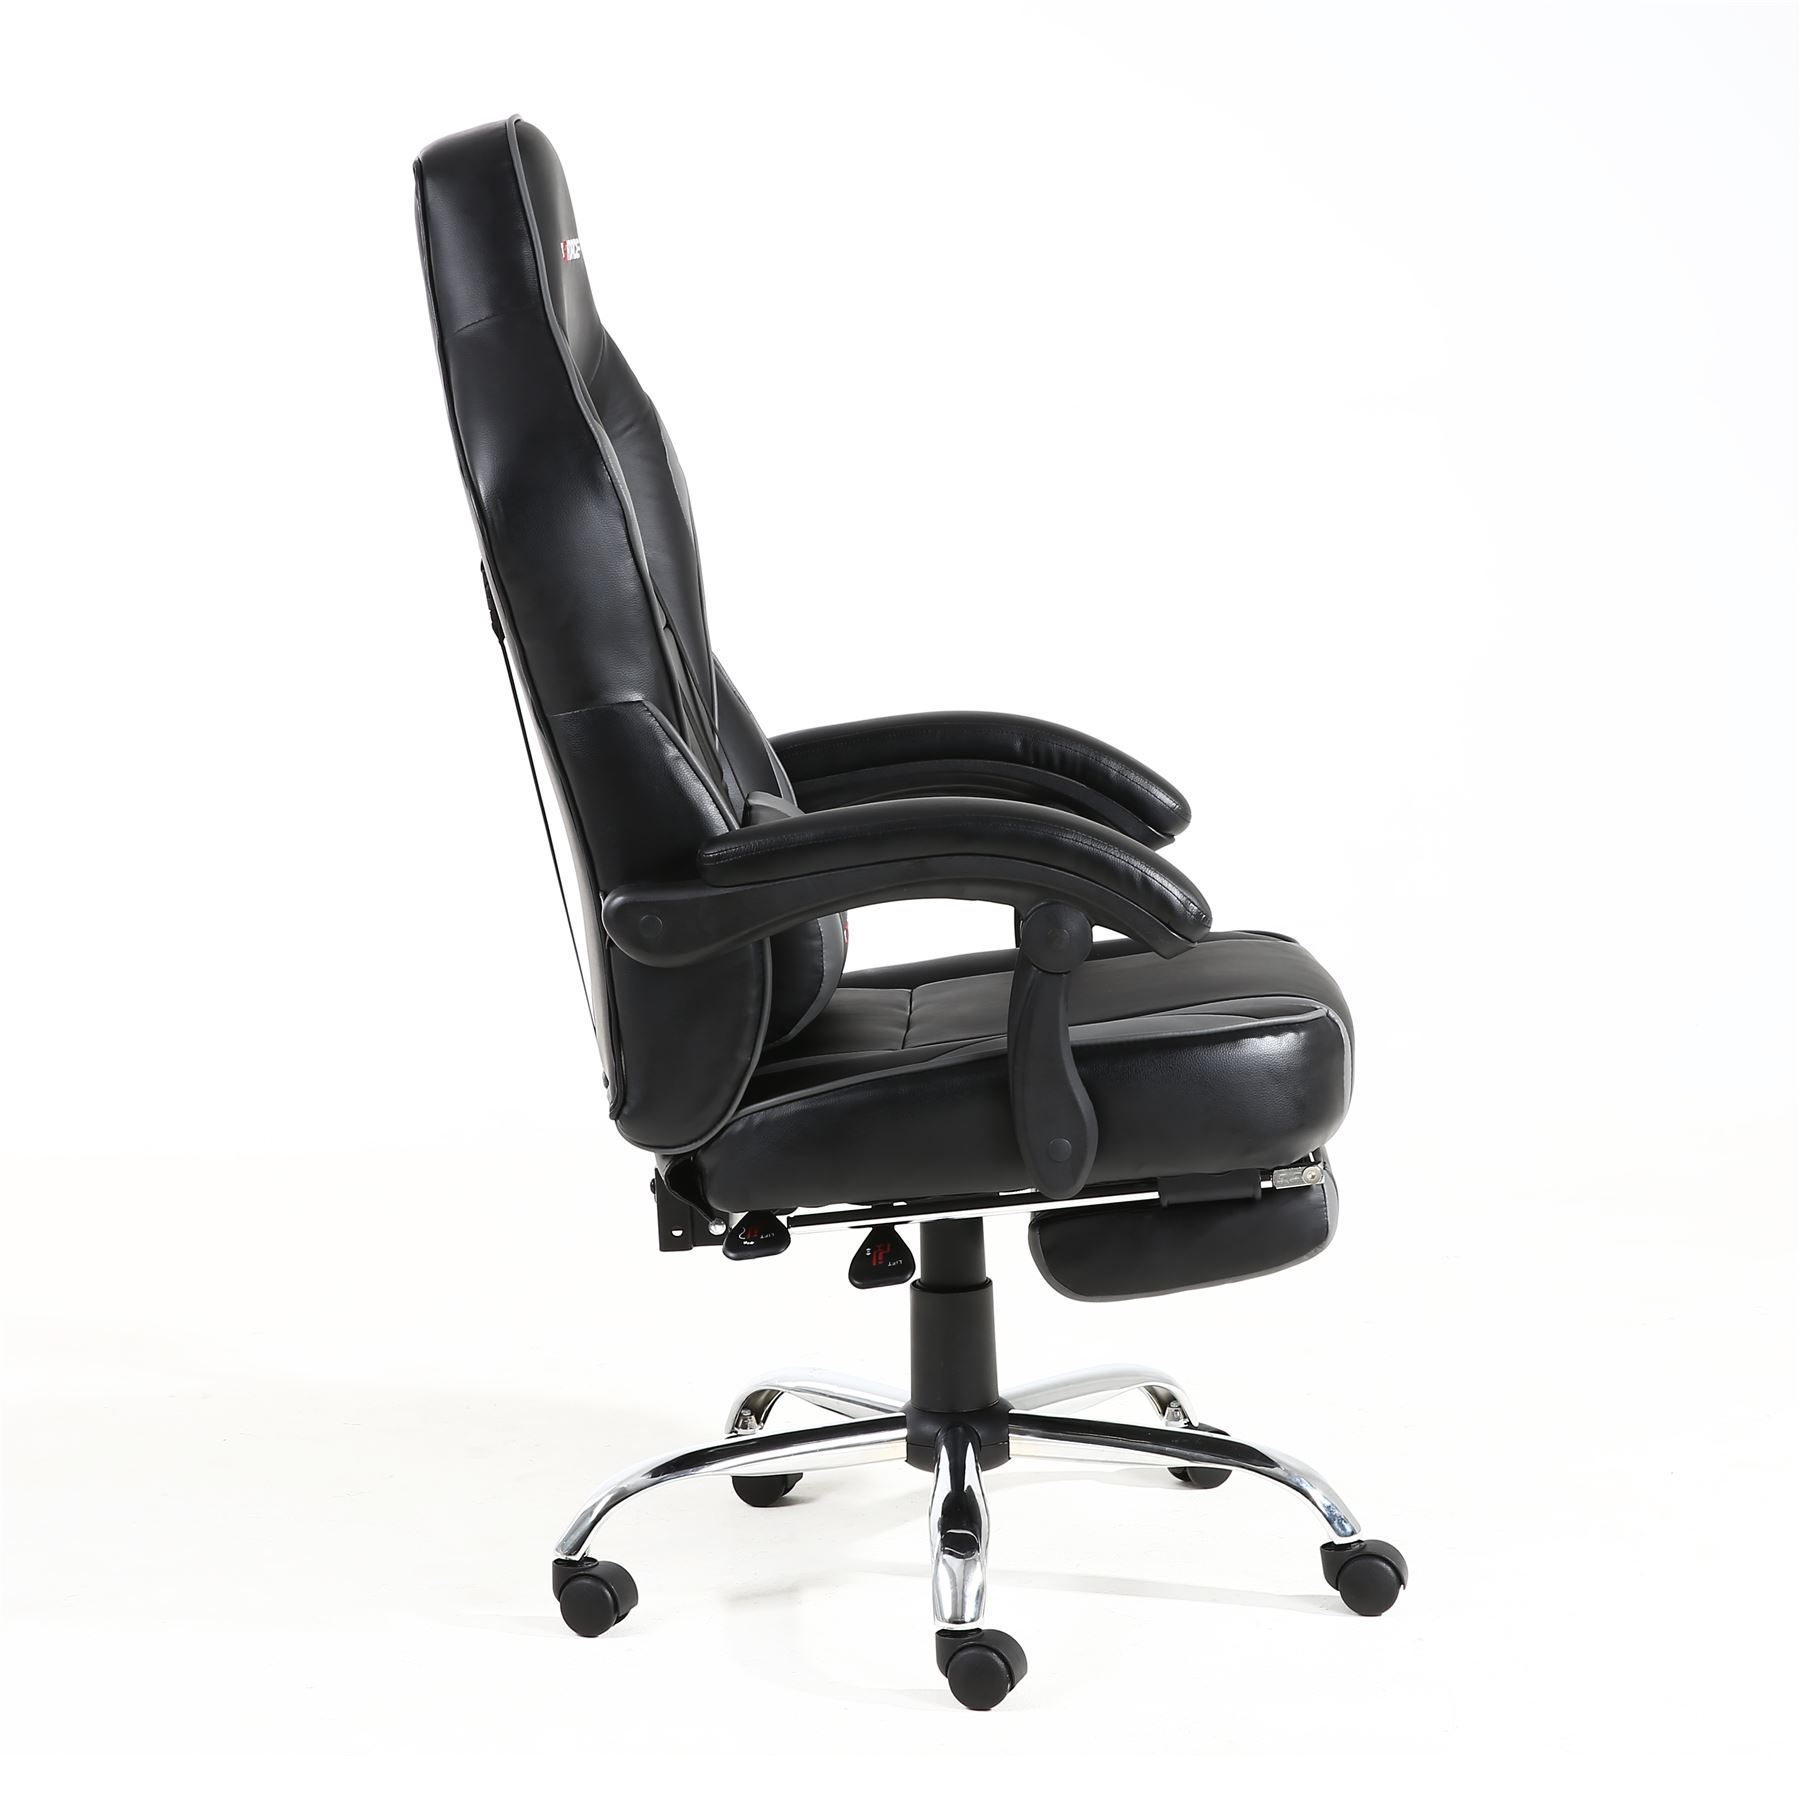 Recliner Computer Chair Gtforce Pace Reclining Leather Sports Racing Office Desk